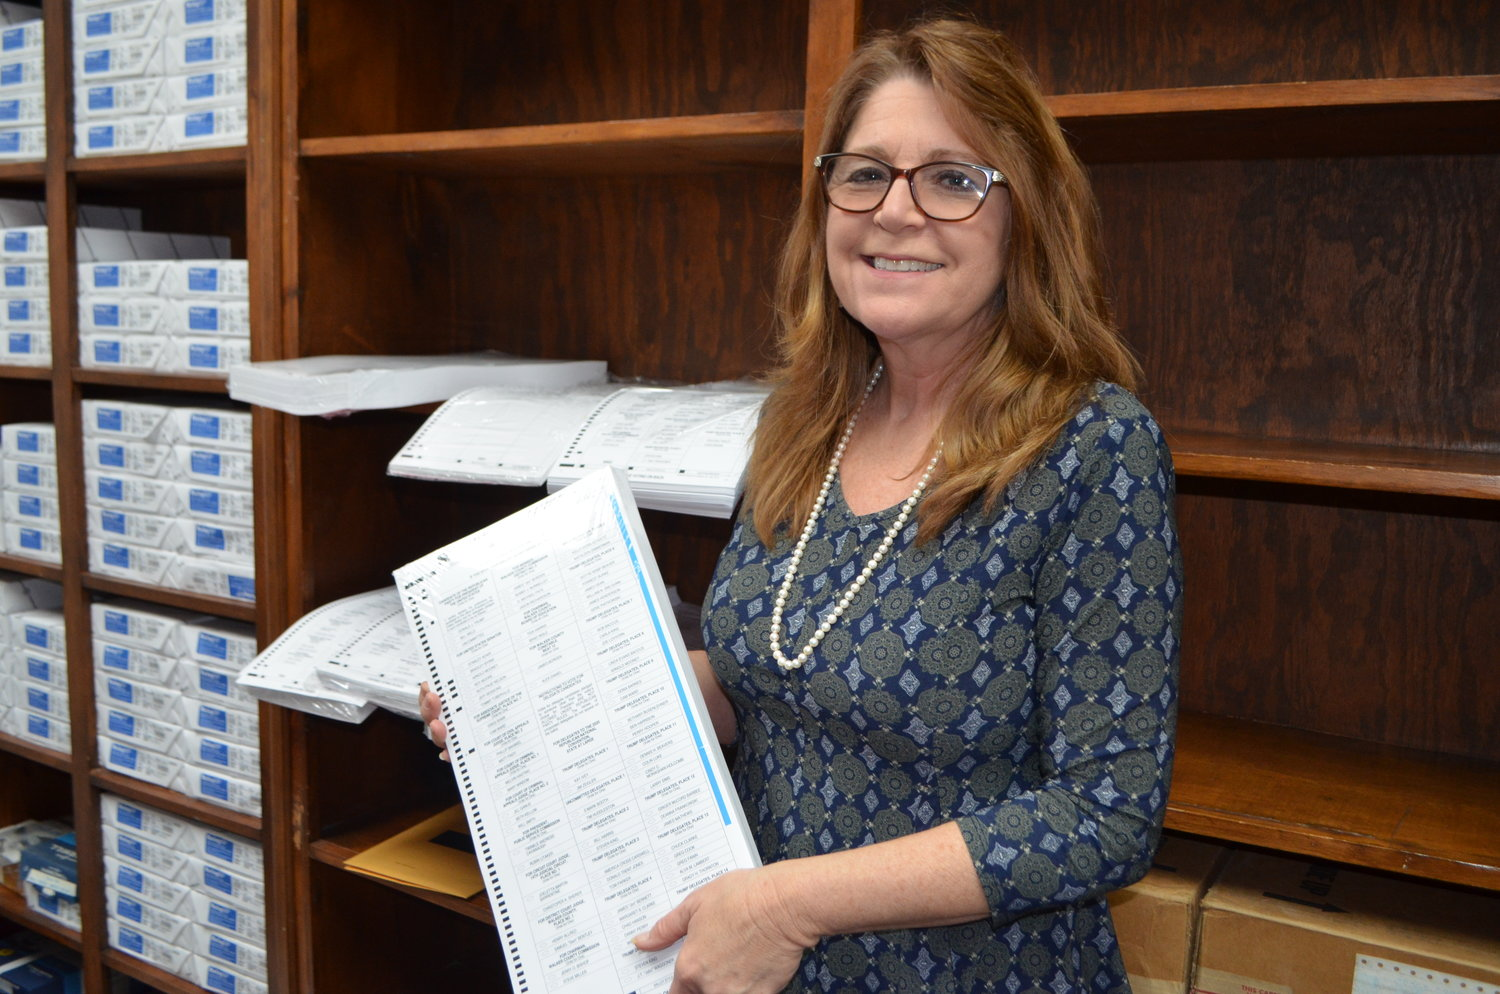 Walker County Circuit Clerk Susan Odom shows off the printed absentee ballots now on hand at her office to use, starting Tuesday.